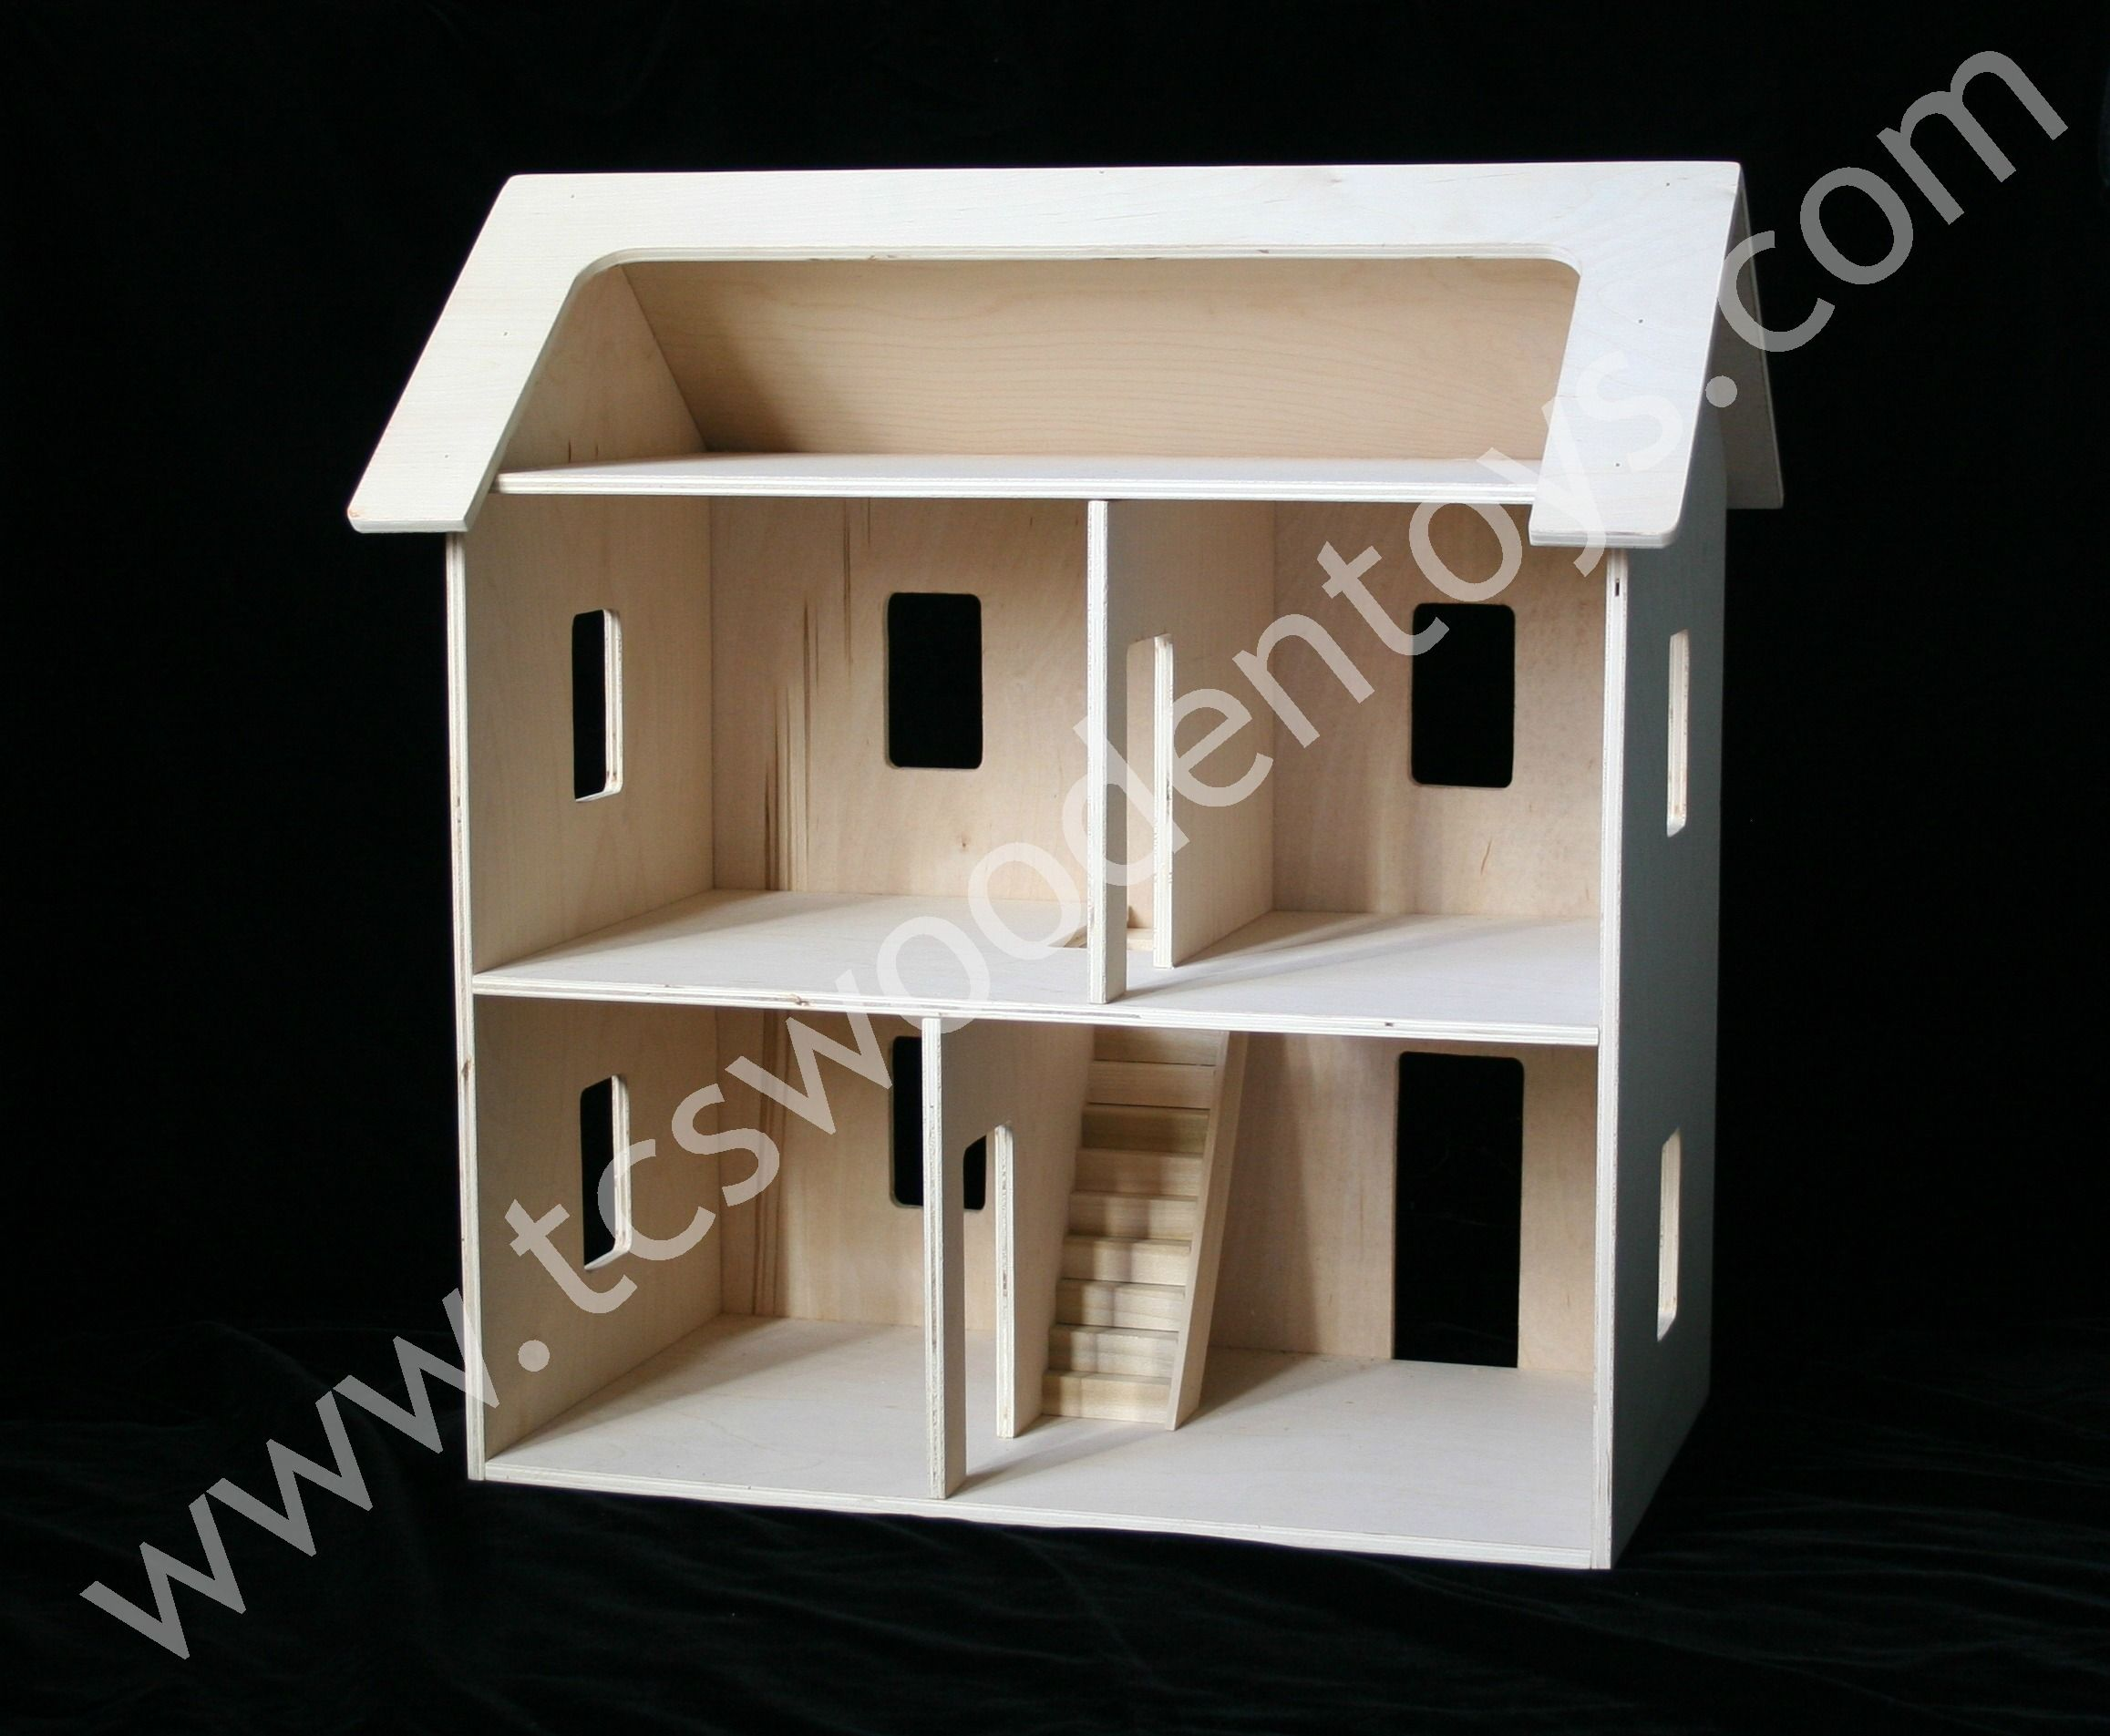 Handmade Wooden Doll Houses | www.pixshark.com - Images Galleries With A Bite!